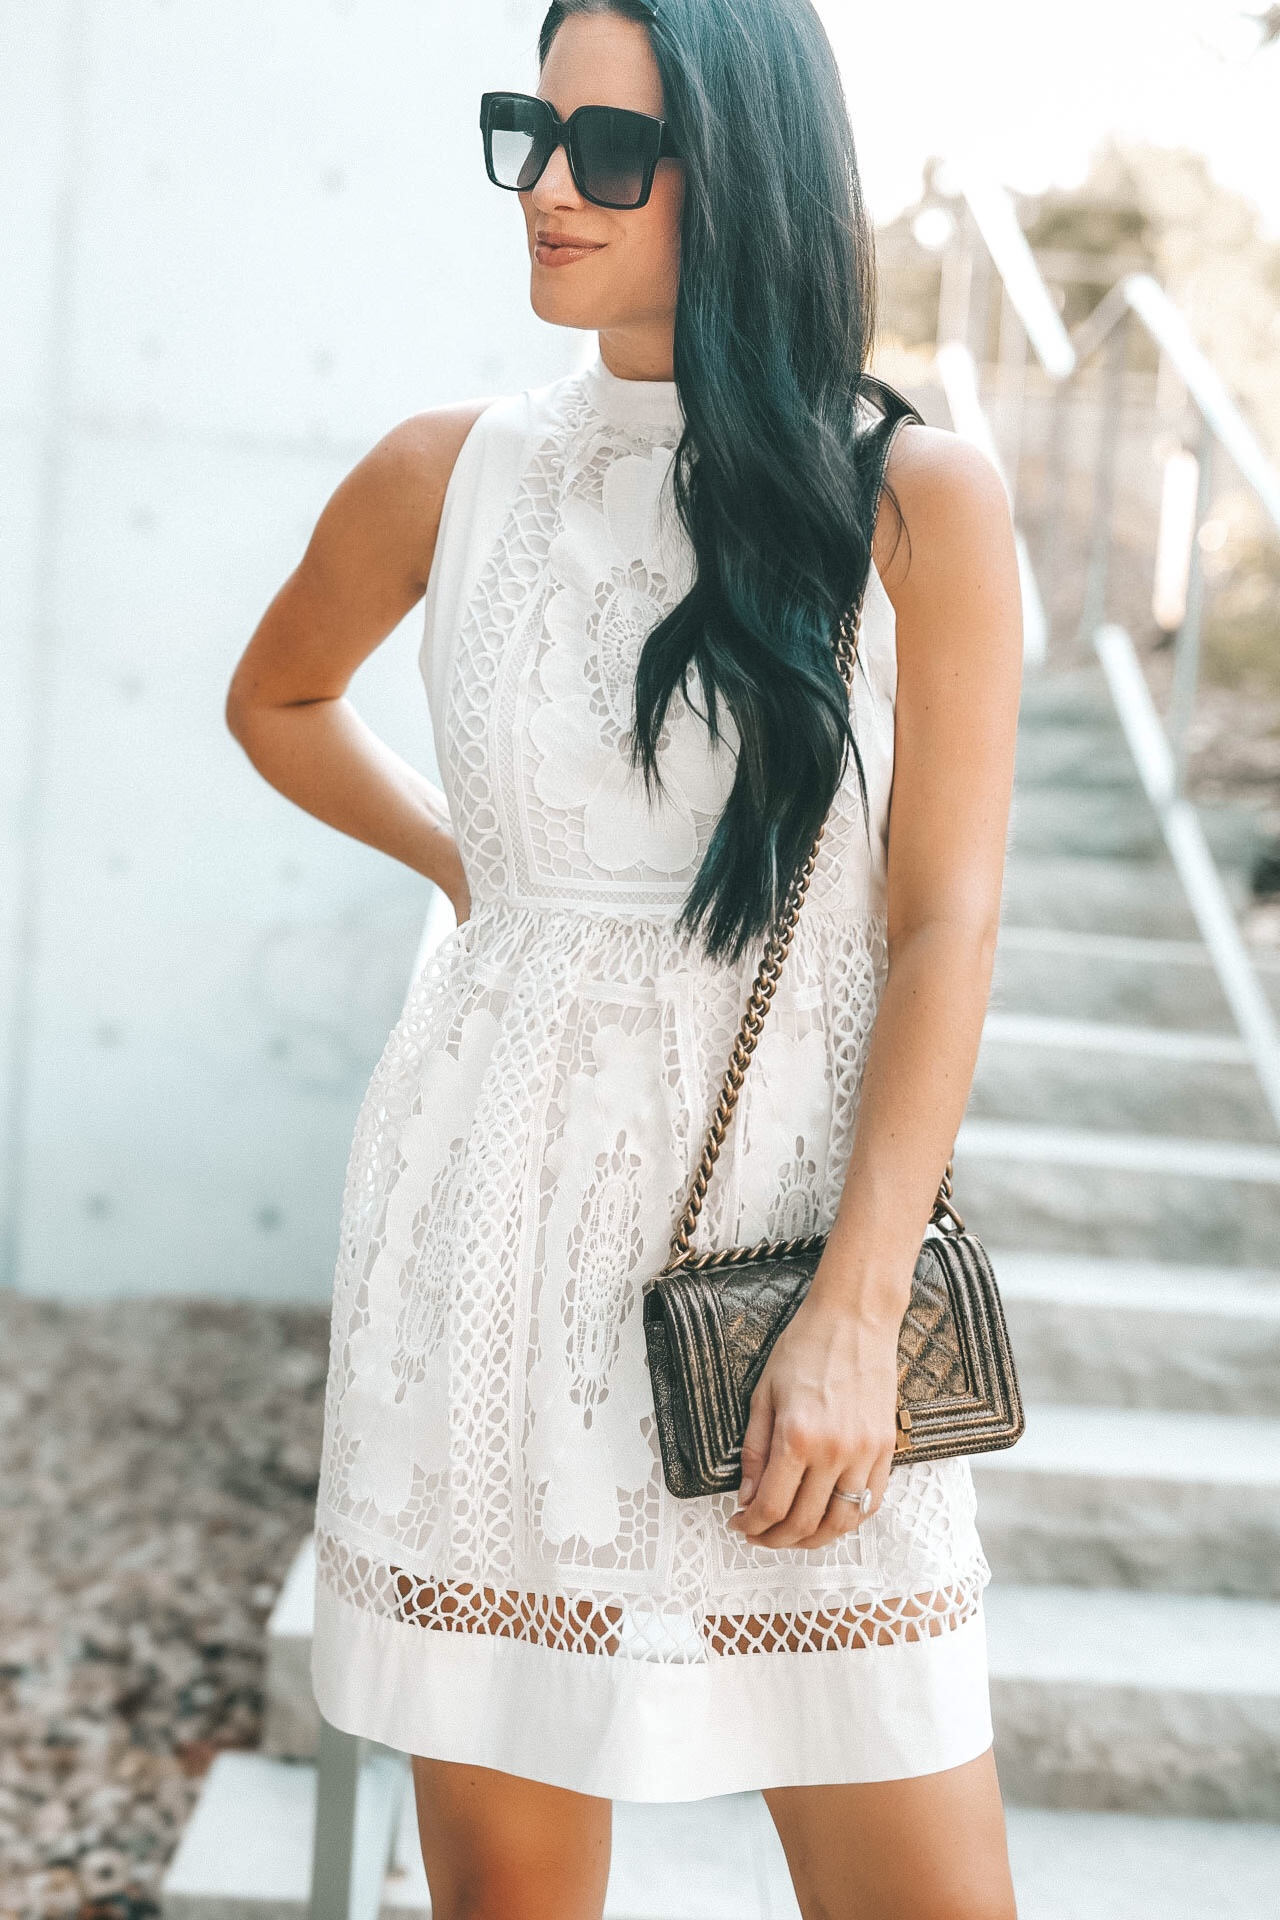 DTKAustin shares one of her favorite white lace dresses from Chicwish with tips on how to style white after Labor Day for Fall.